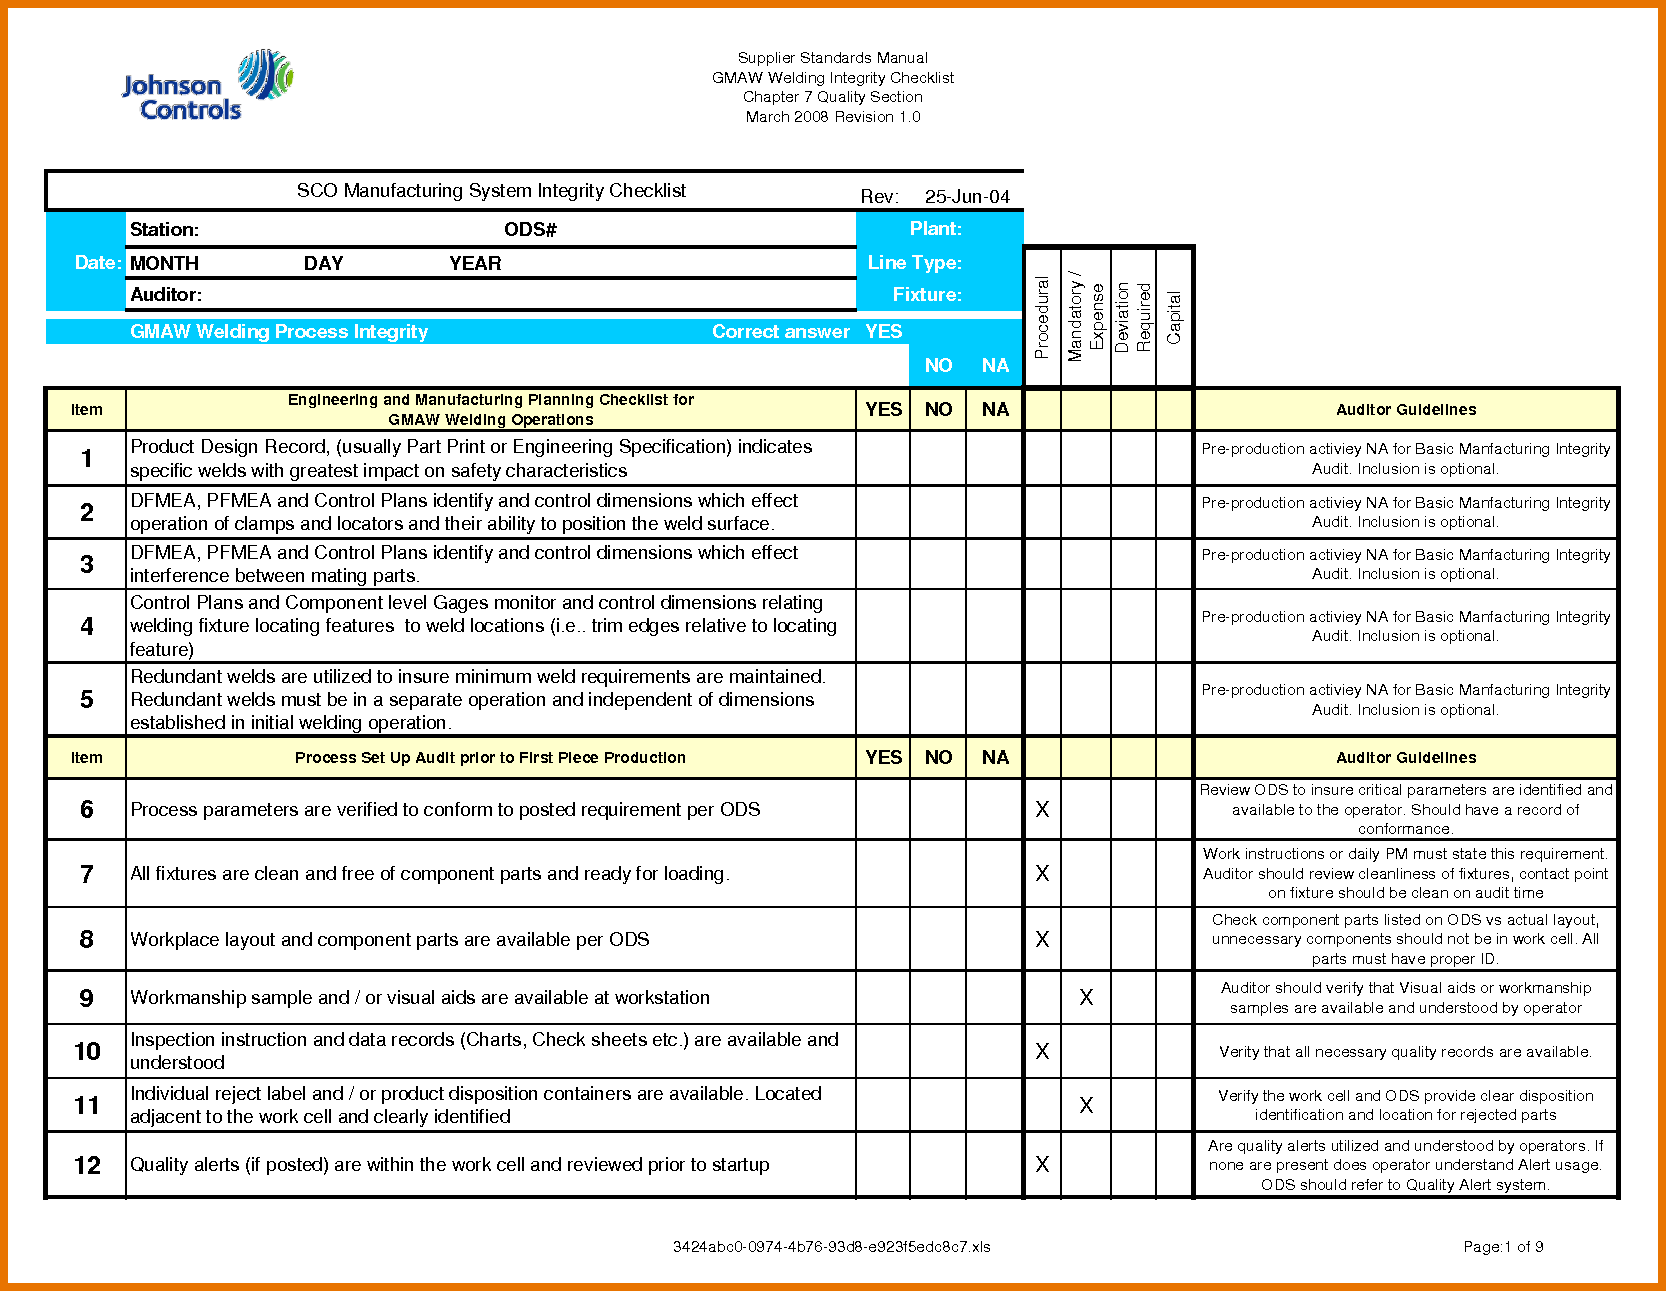 Personal Iso 9001 2015 Checklist Excel Template Throughout Iso 9001 2015 Checklist Excel Template Examples